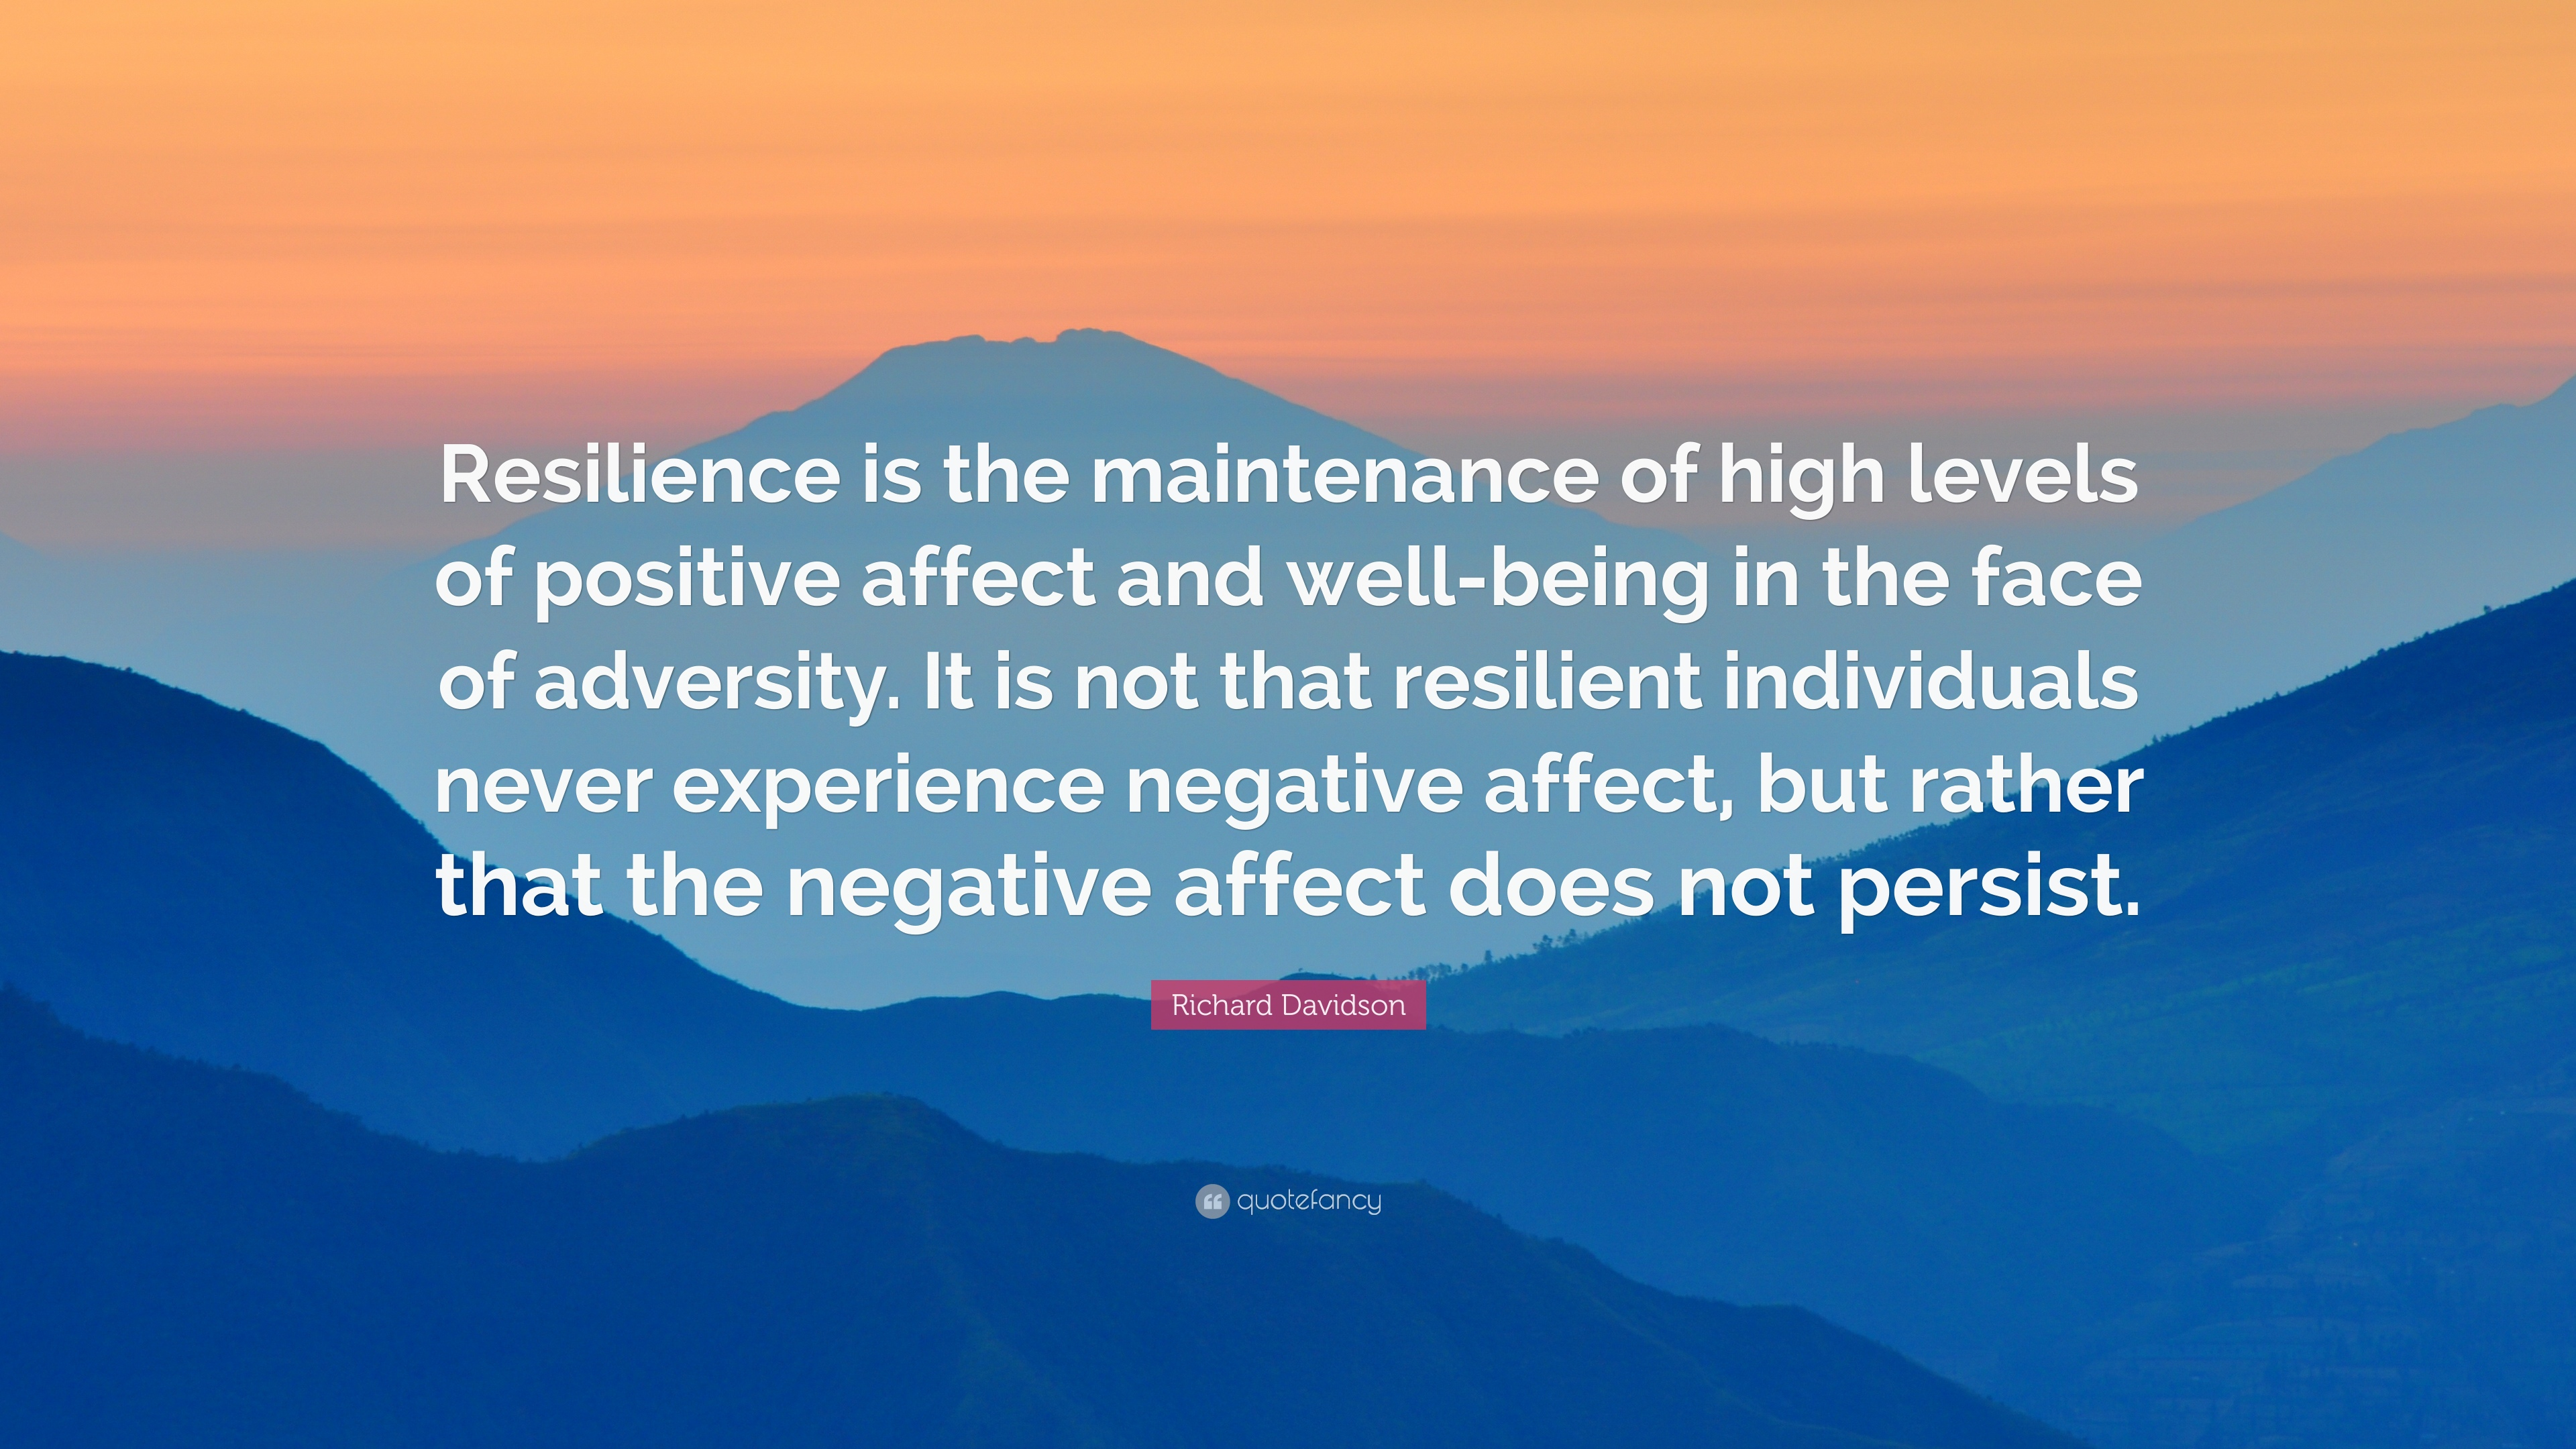 Resilience Quotes Richard Davidson Quotes 15 Wallpapers  Quotefancy